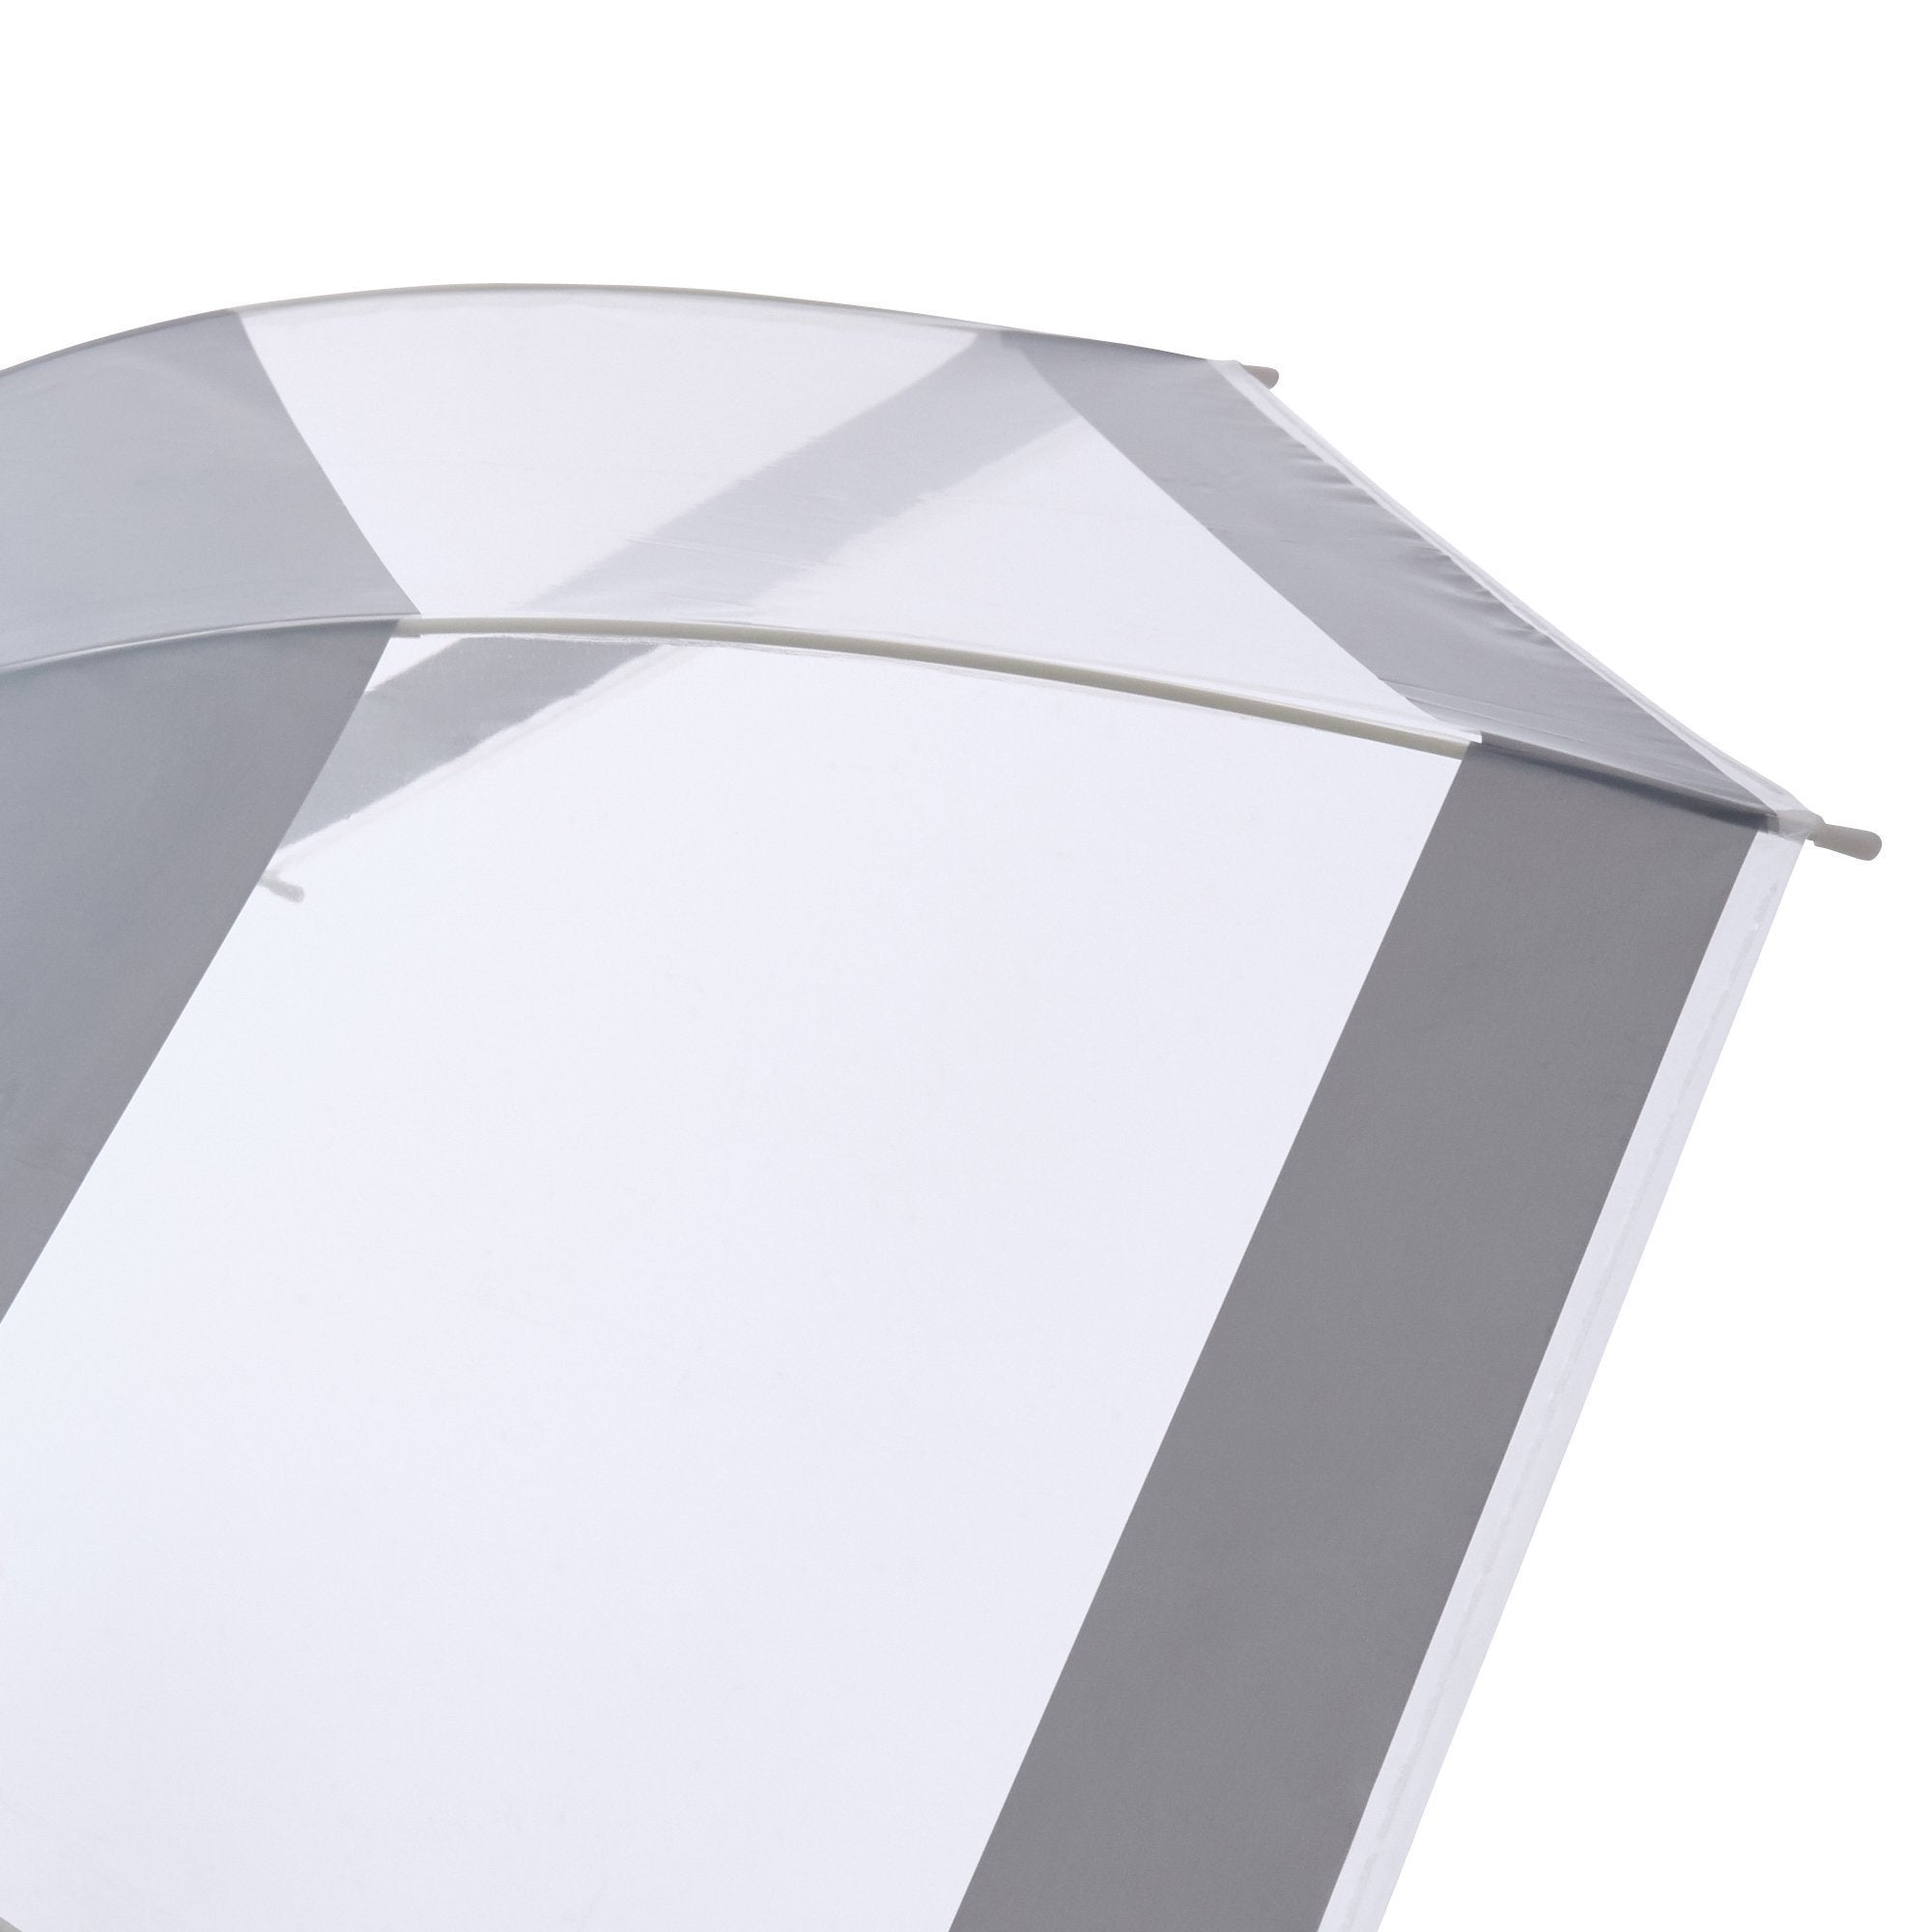 PLUIE Plastic Umbrella grey - weare-francfranc